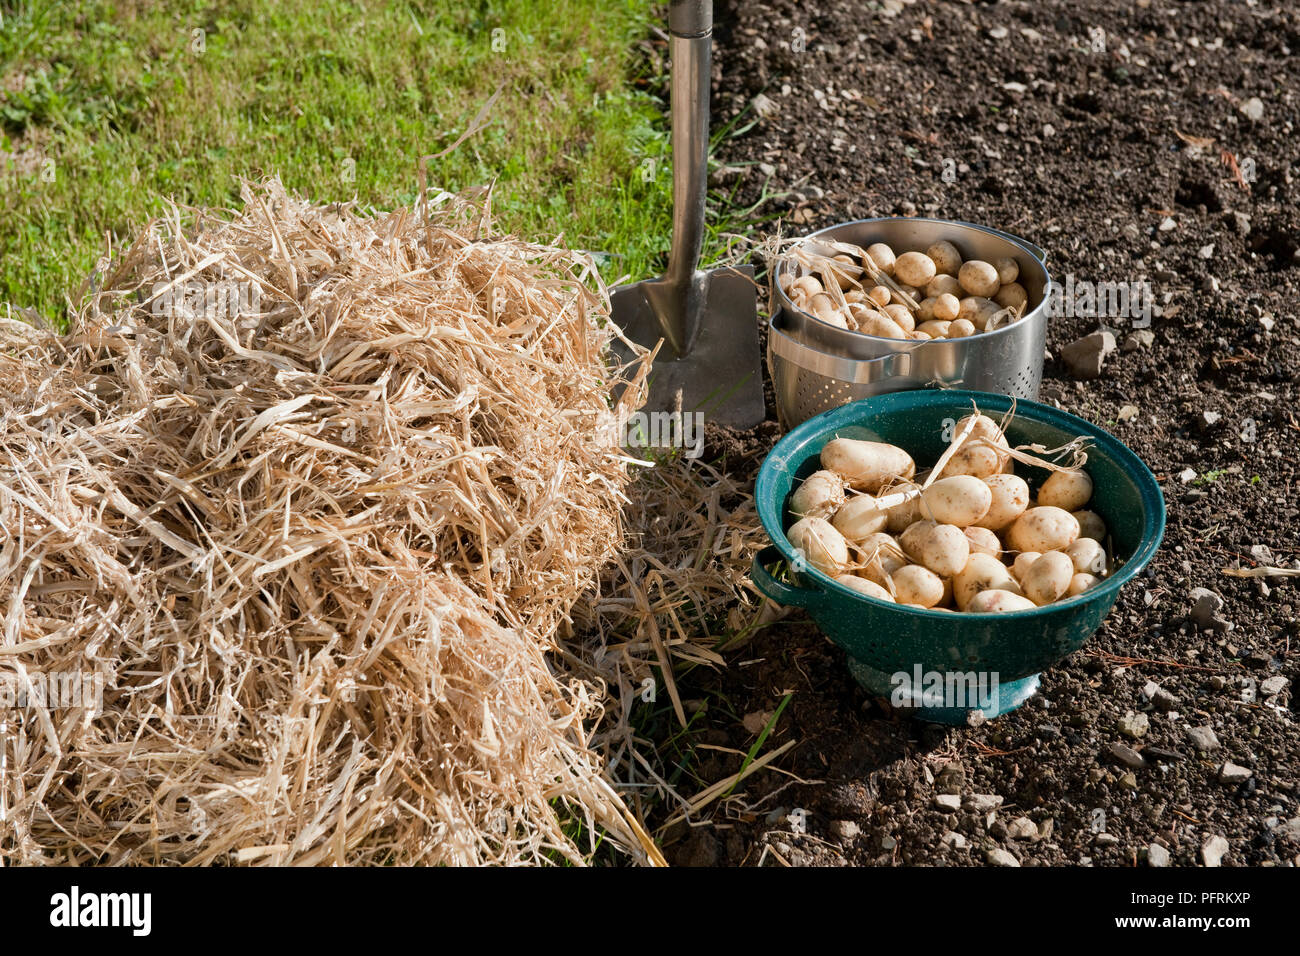 Harvested potatoes left to dry in colanders, and a pile of straw to make a potato clamp - Stock Image